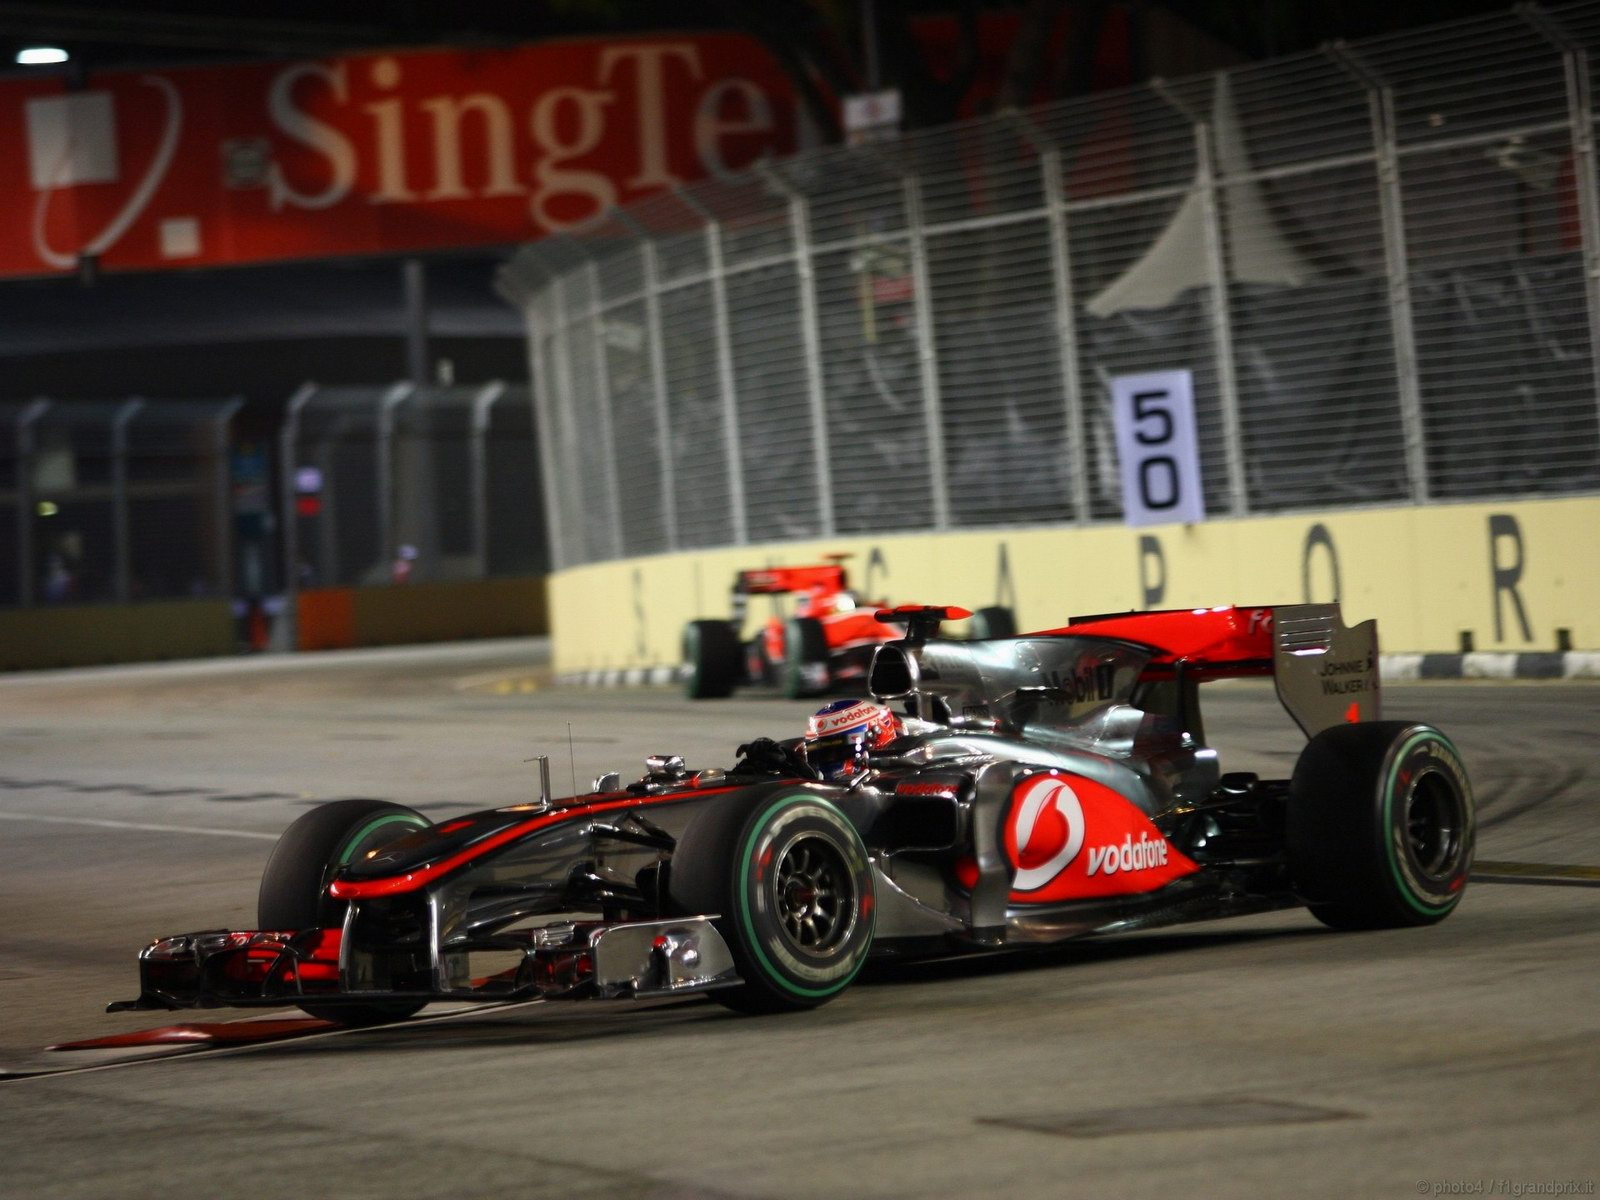 pojazdy - formula1 - gp_singapore_wallpapers_000040